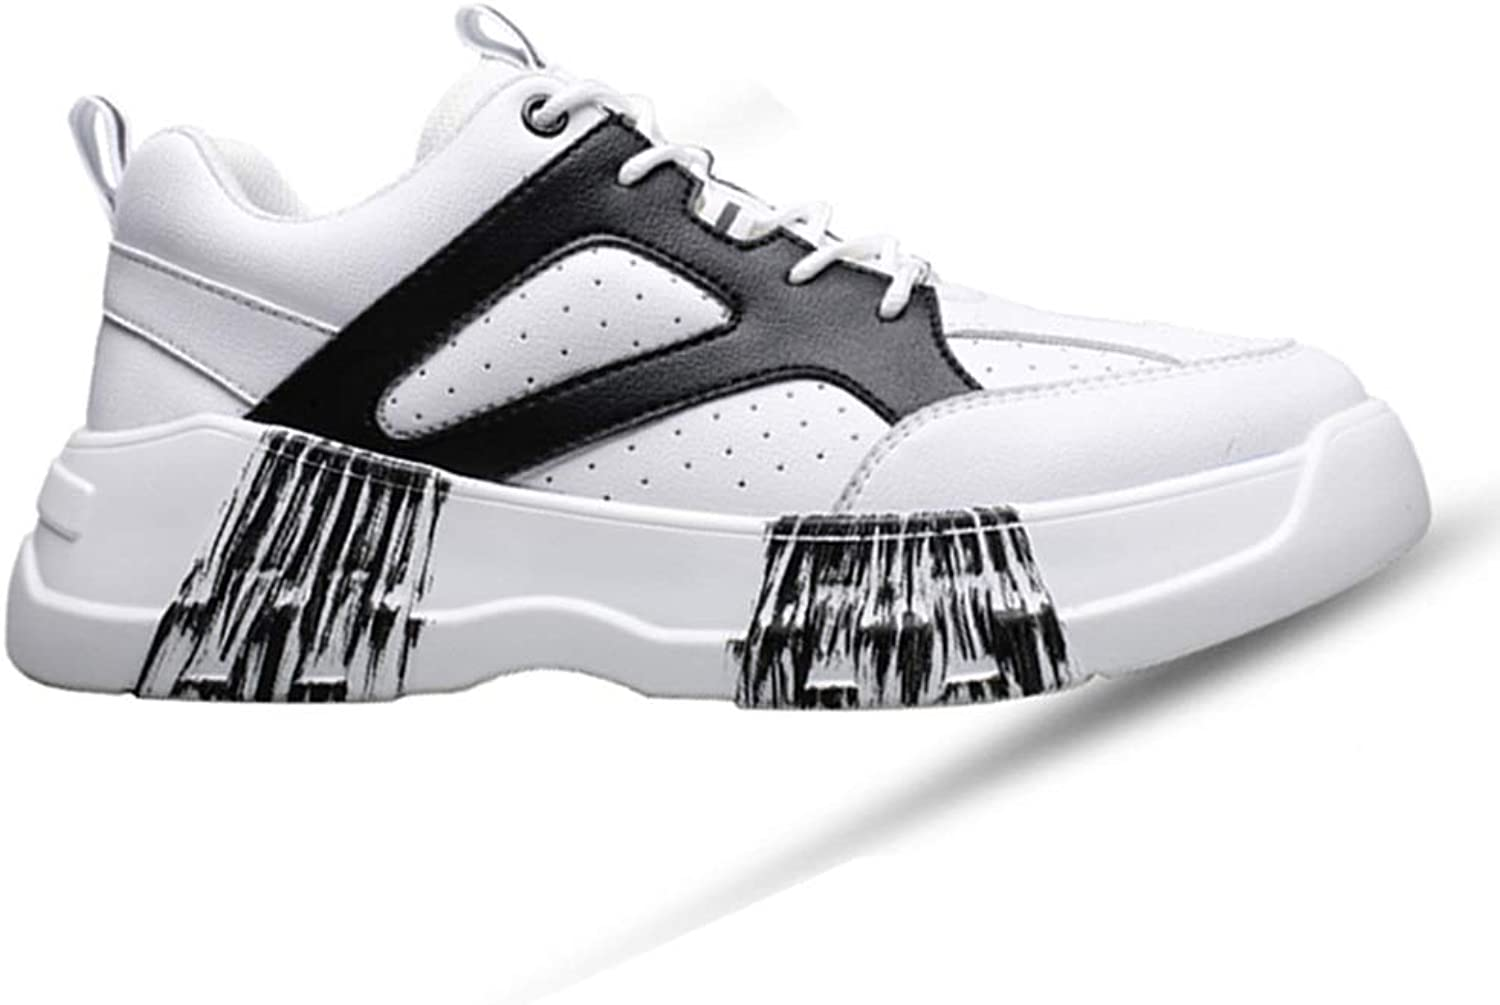 Fashion Sneakers Men's shoes Spring 2019 New Sports shoes Men's Casual shoes Breathable Fashion Sports shoes Trend White shoes (color   Black, Size   7M US)